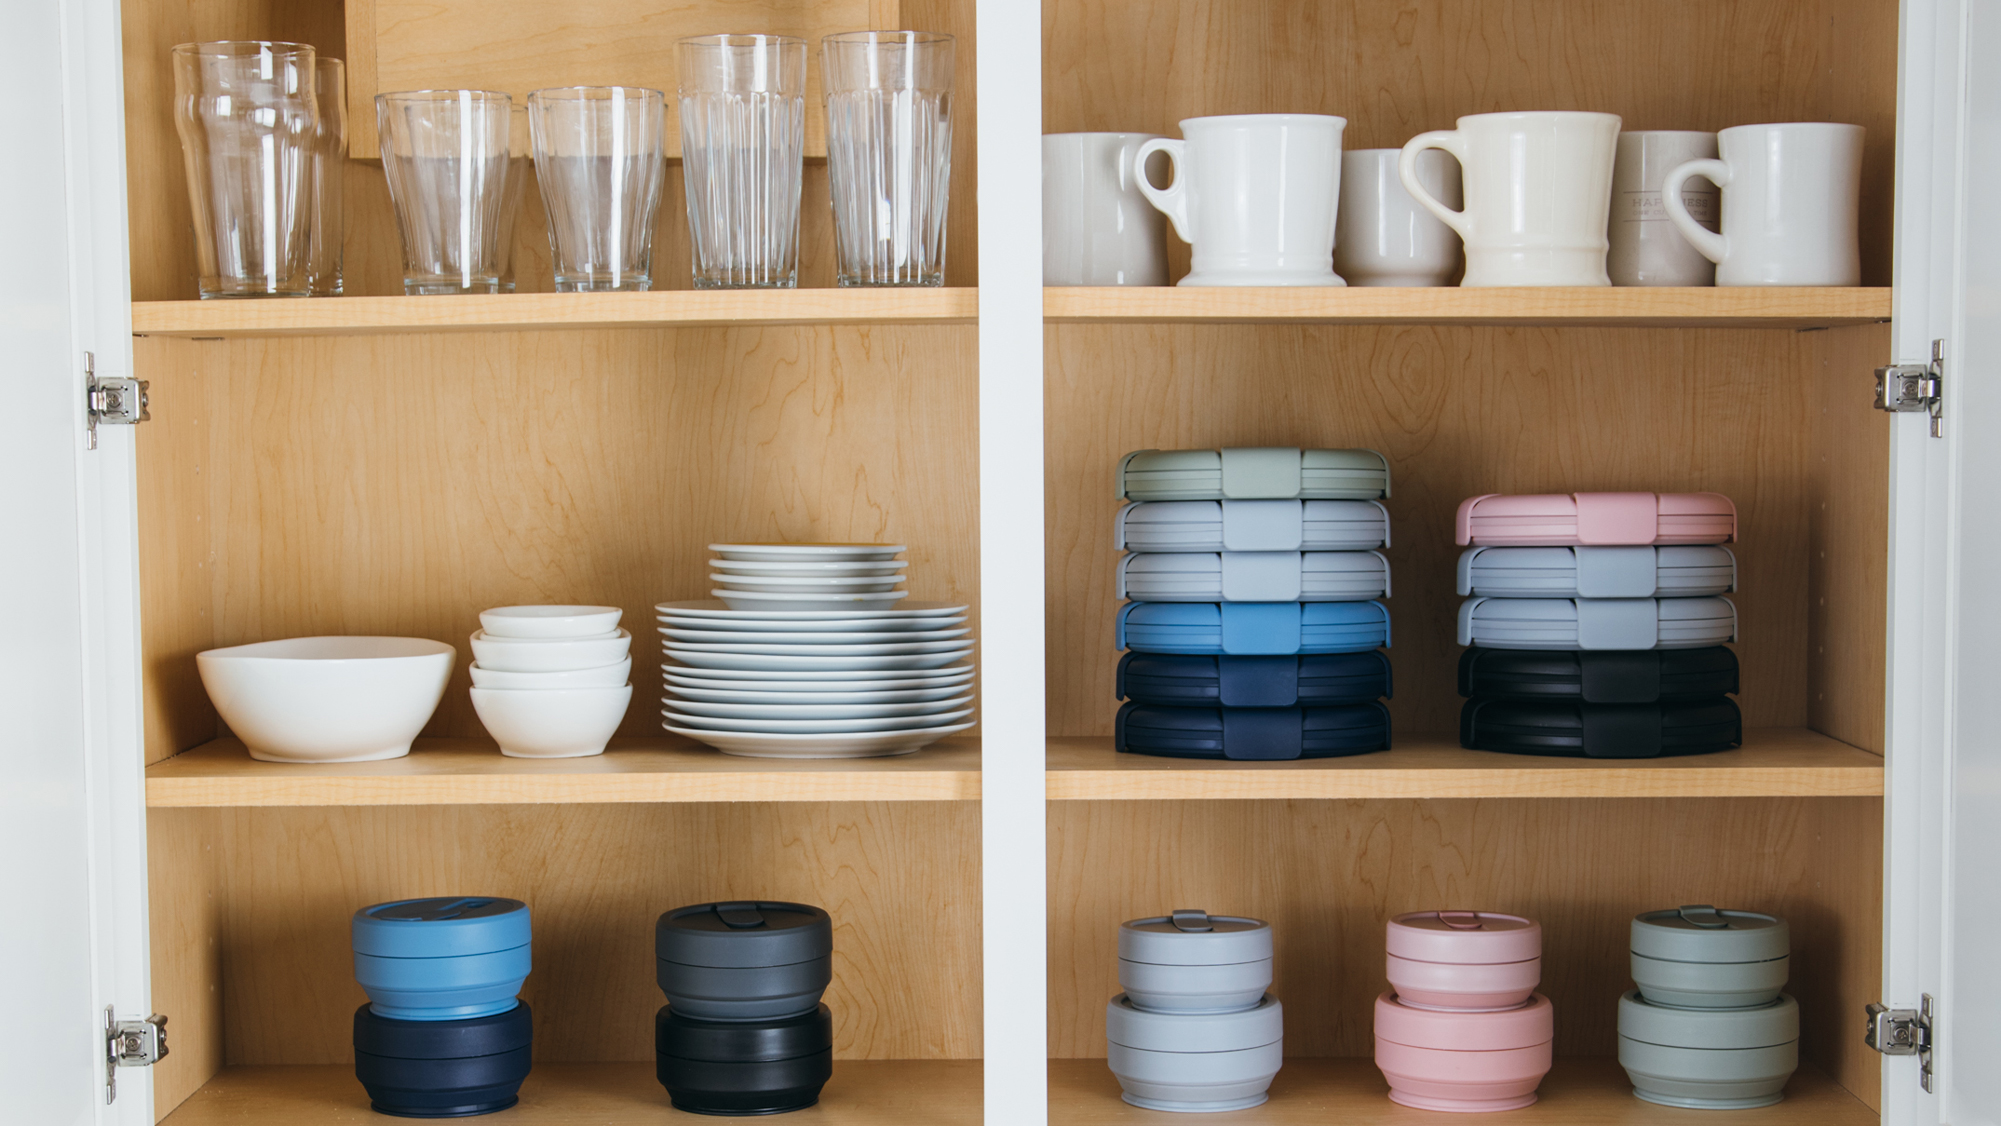 Stojo Foldable Dishes in a kitchen cabinet